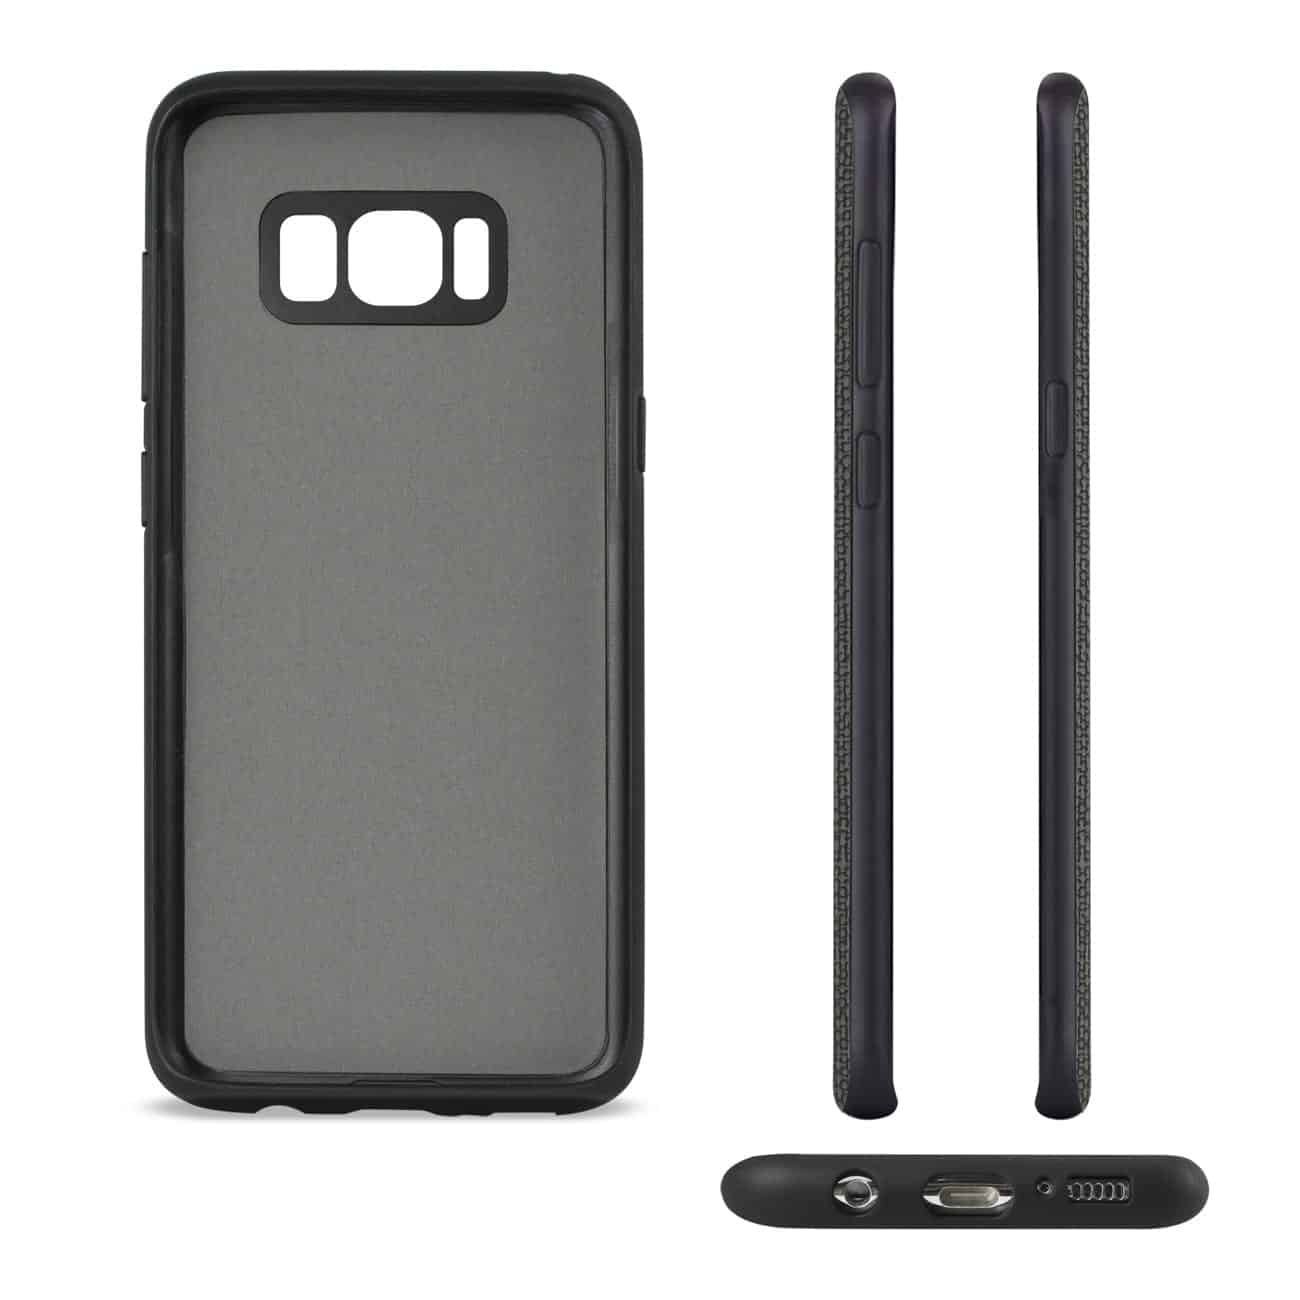 SAMSUNG GALAXY S8 EDGE/ S8 PLUS ANTI-SLIP TEXTURE PROTECTOR COVER WITH CARD SLOT IN BLACK